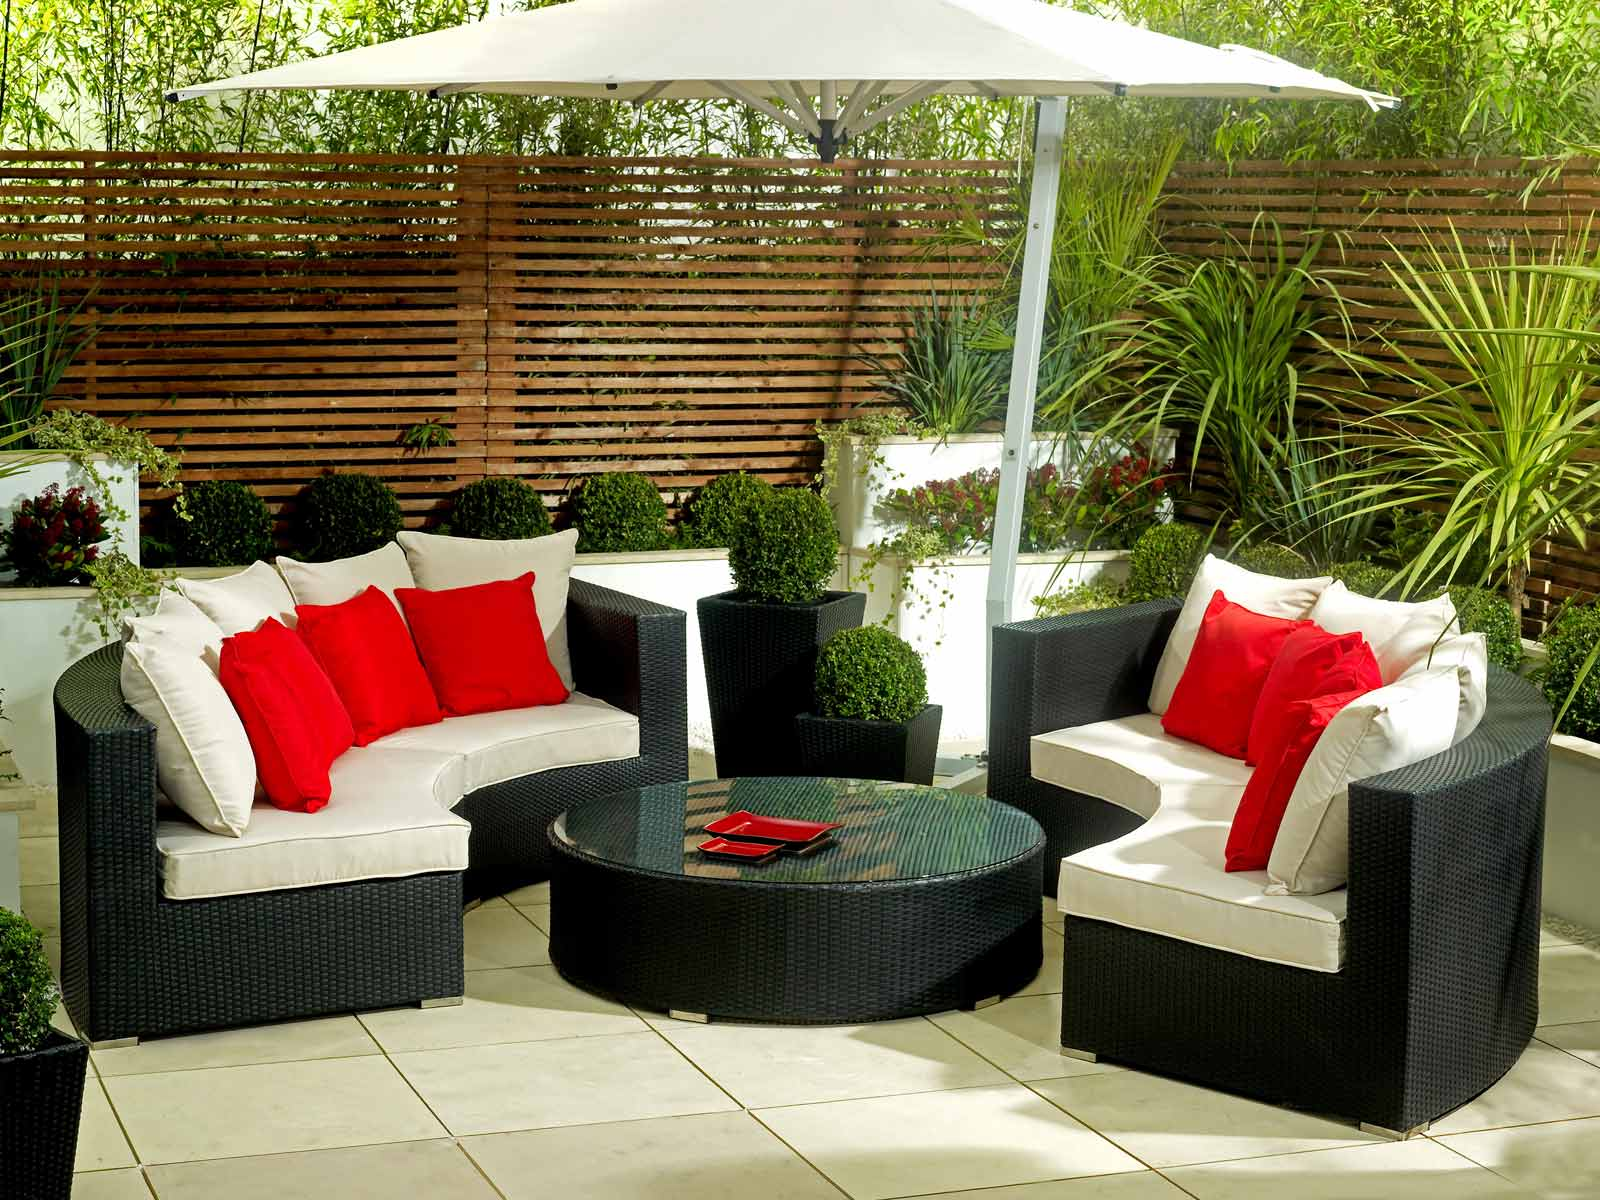 Furniture store sweet home furniture stores for Patio and outdoor decor